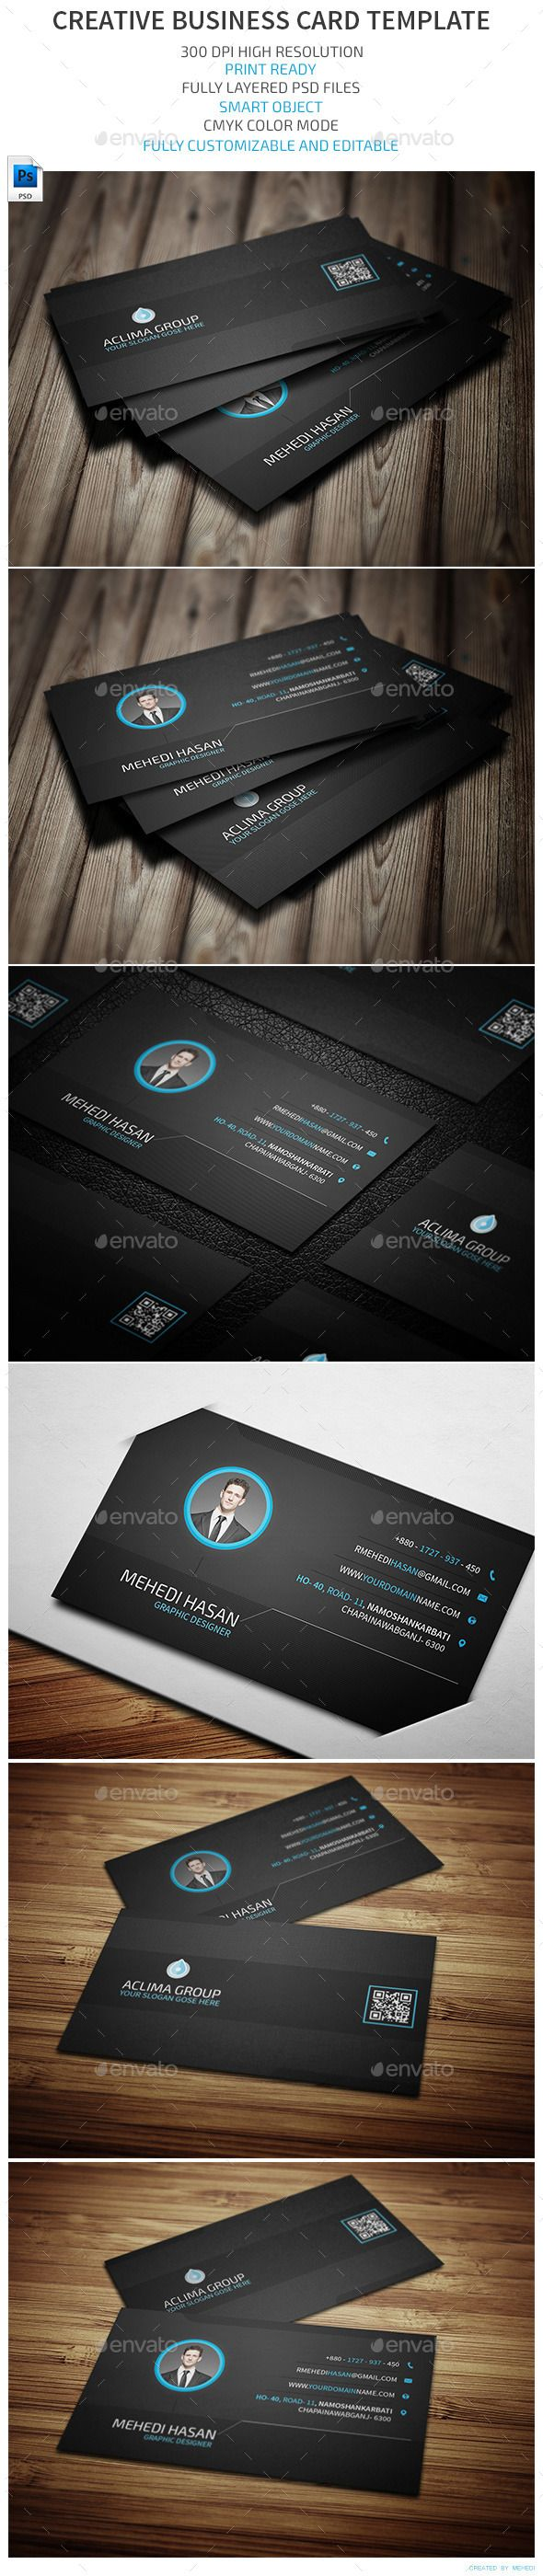 11 Best My Projects Images On Pinterest Business Card Design